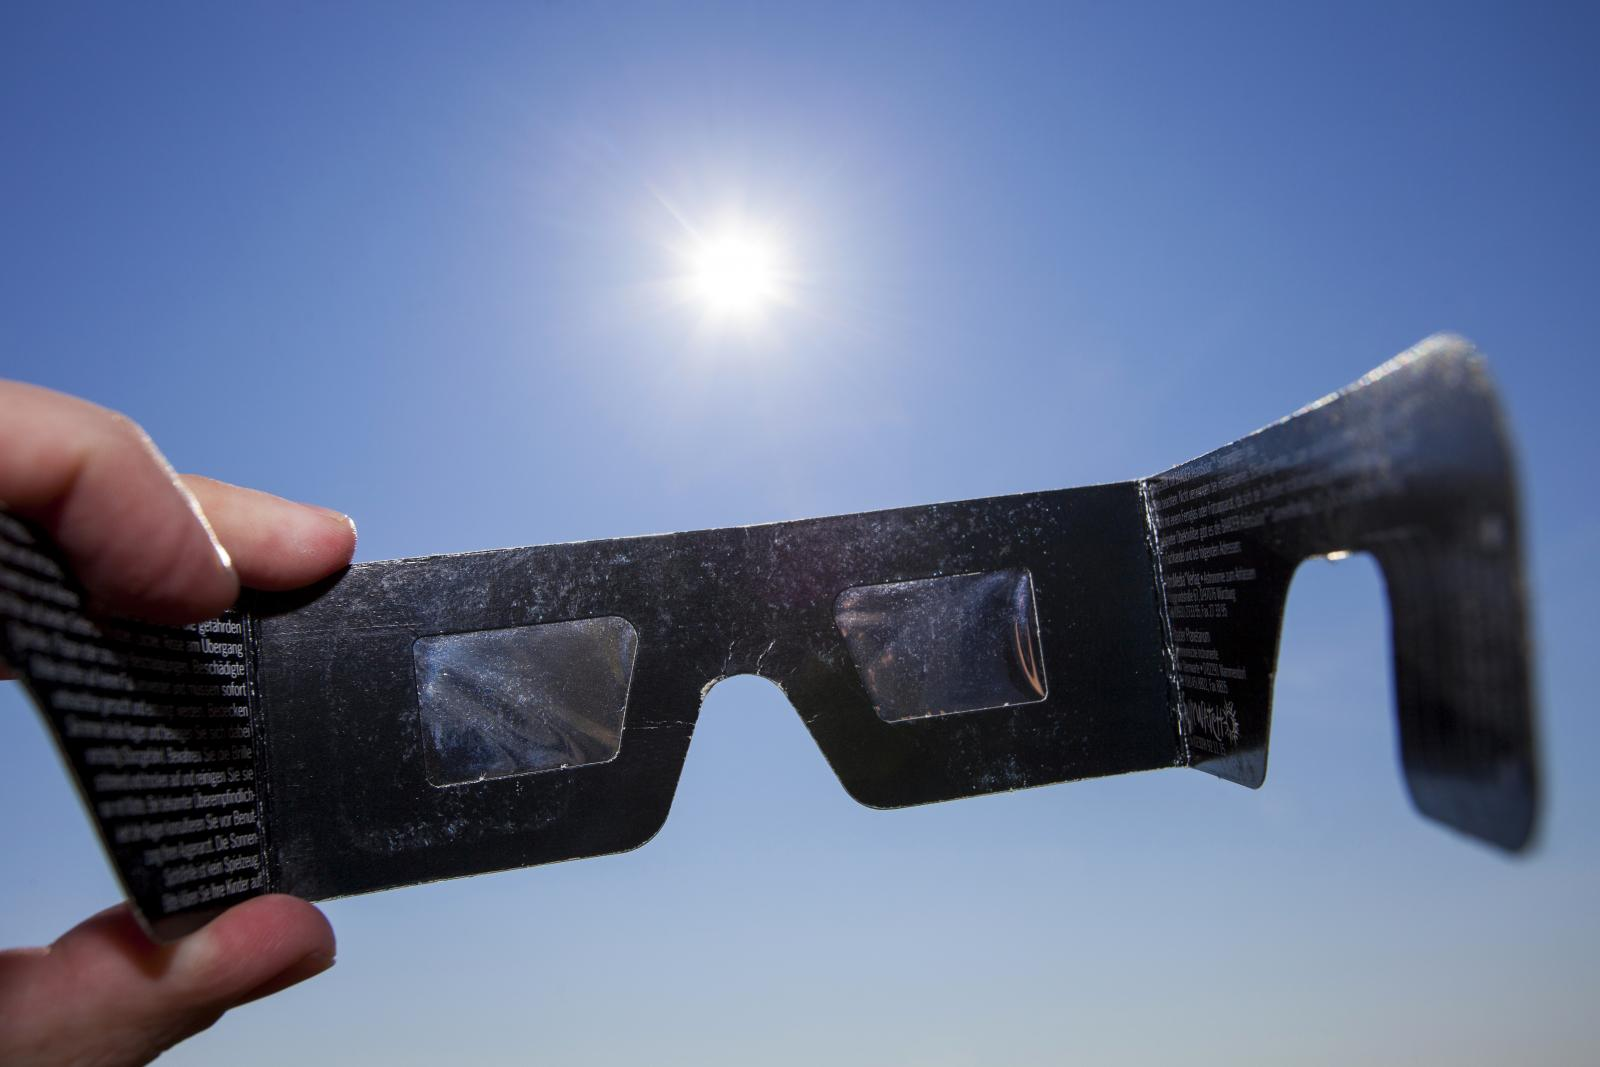 Use eclipse glasses or project the suns image onto a piece of paper to view the solar eclipse